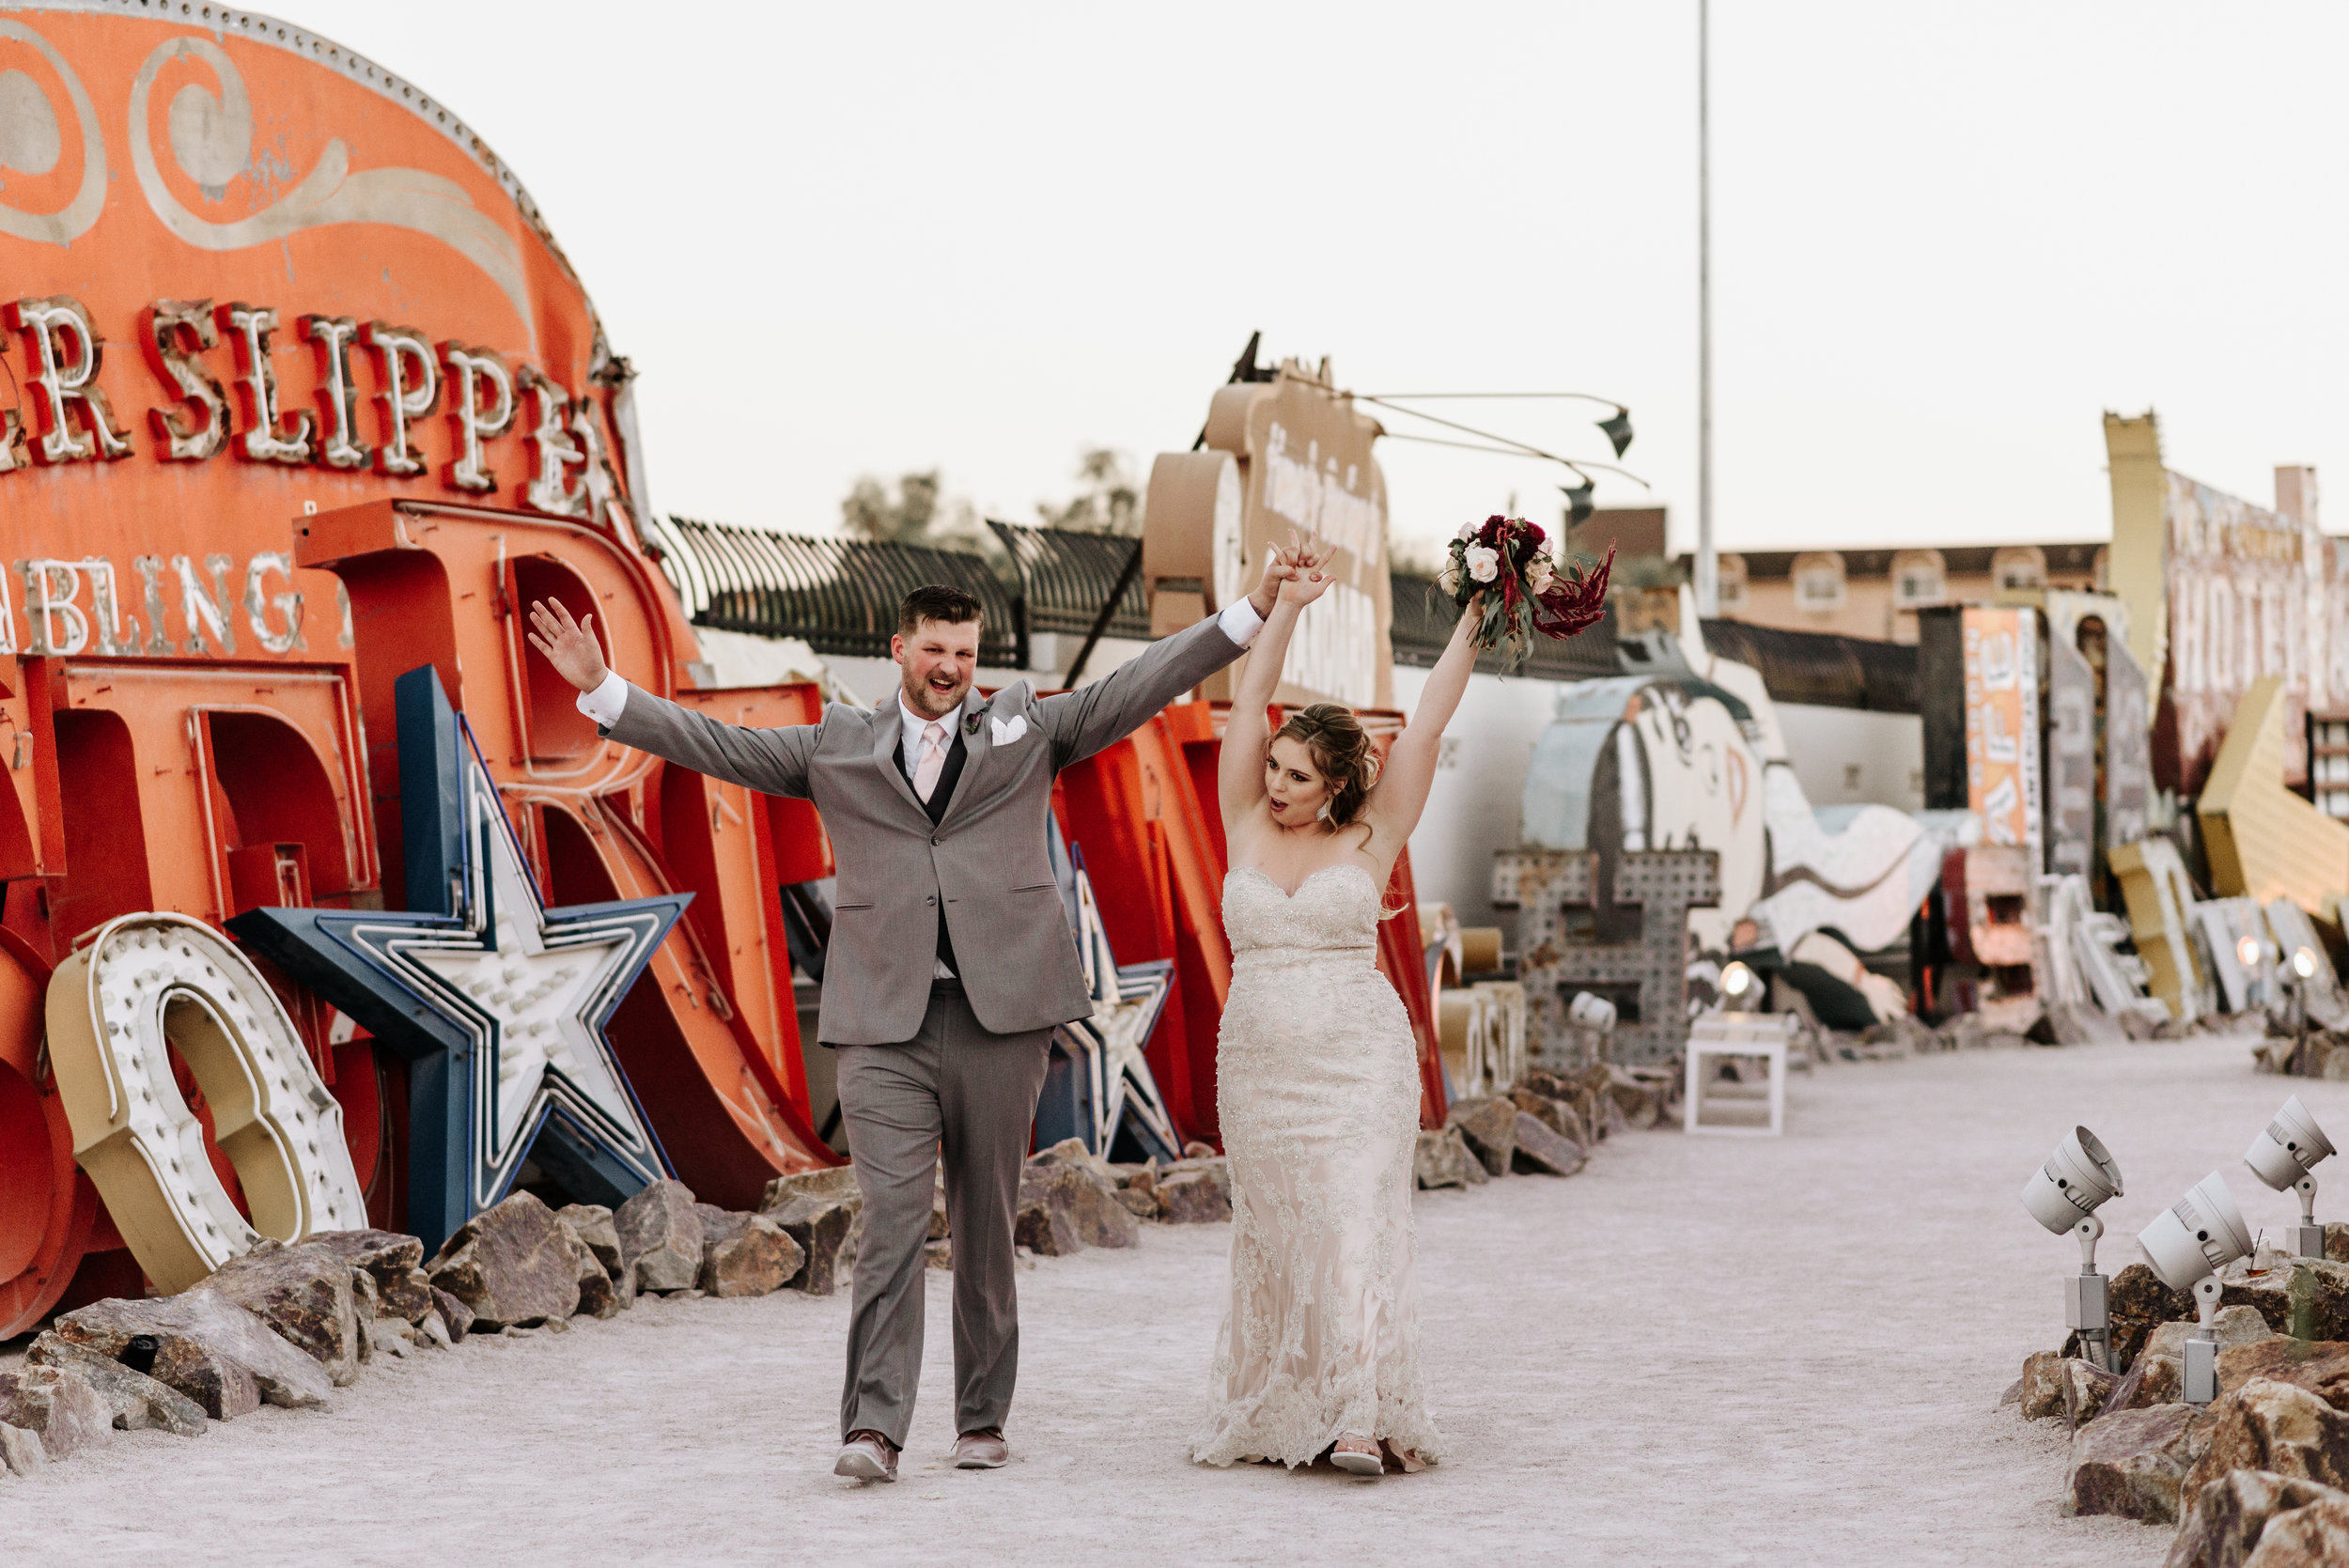 Neon-Museum-Wedding-Las-Vegas-Nevada-Golden-Nugget-Photography-by-V-Ally-and-Dan-6869.jpg